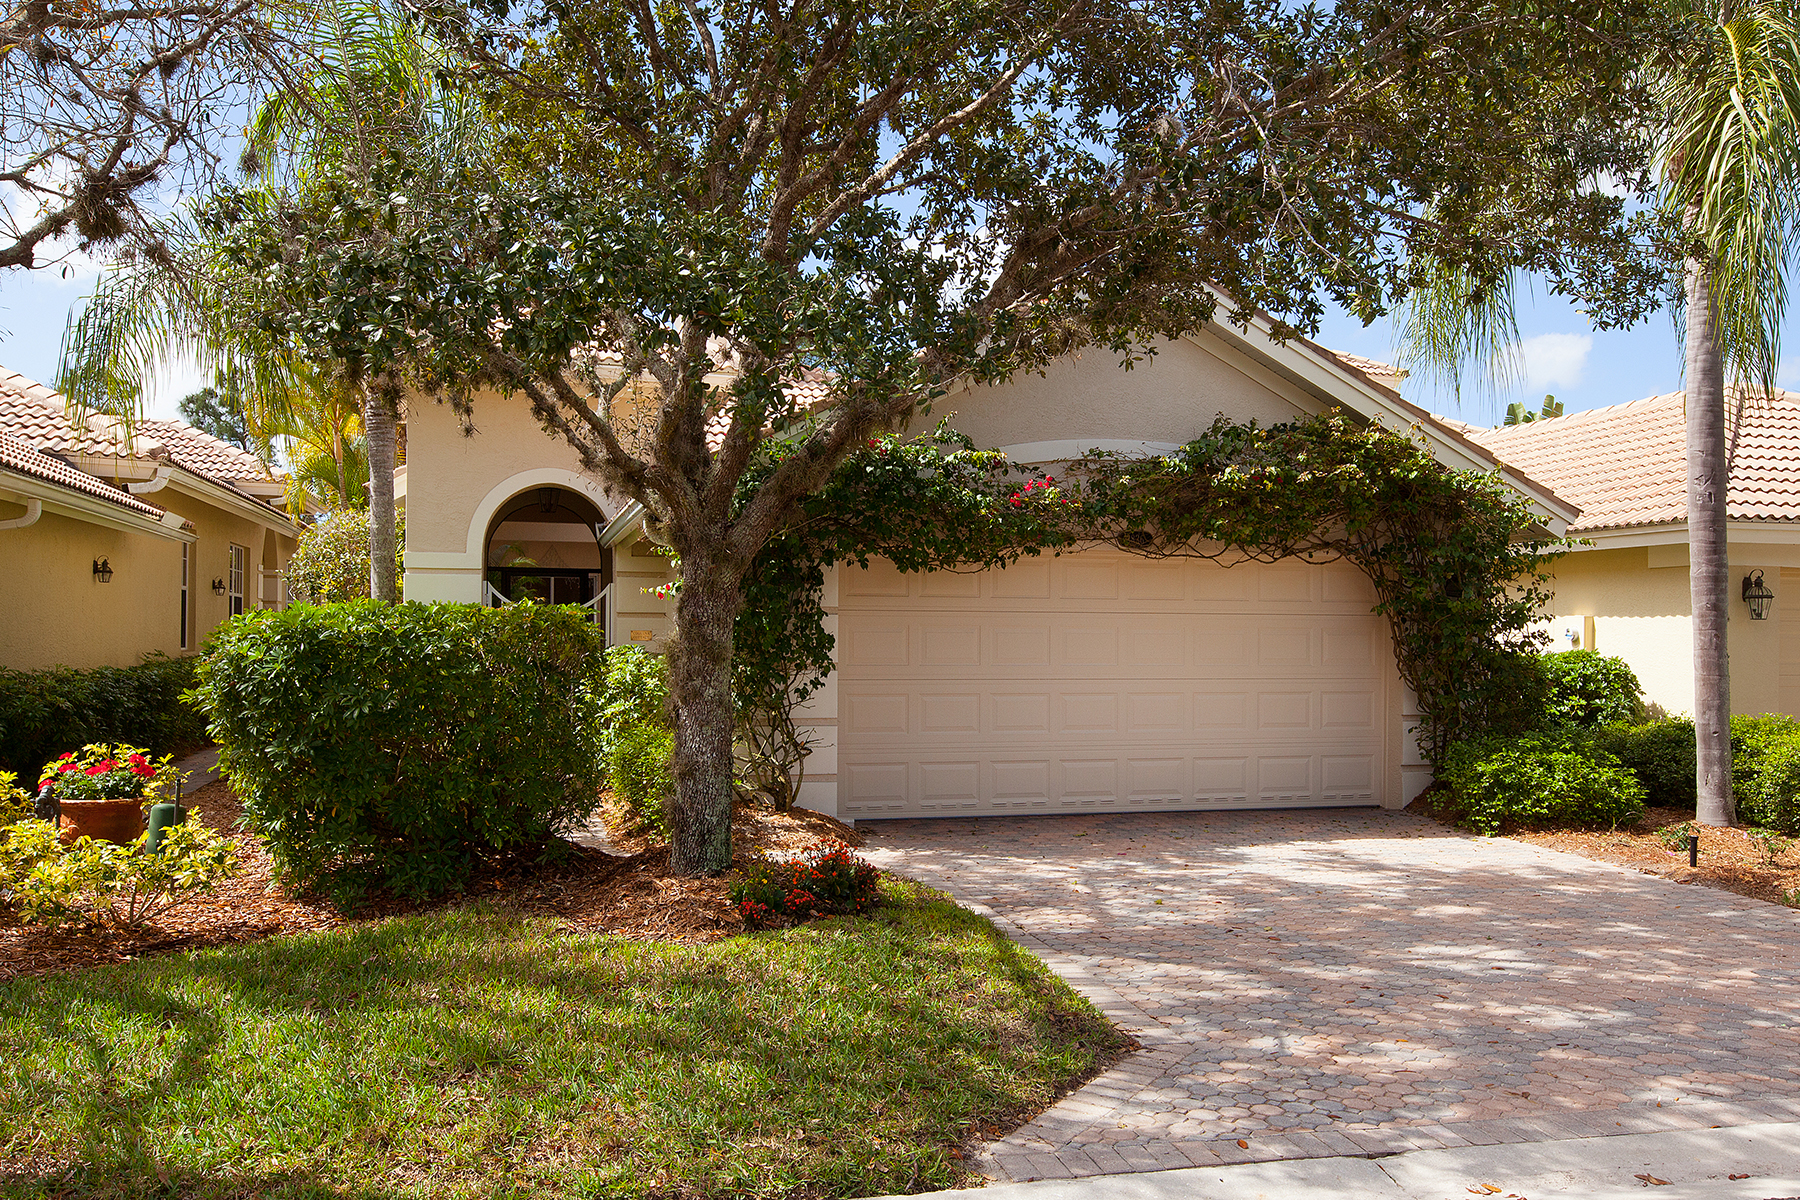 Single Family Home for Sale at FIDDLER'S CREEK - COTTON GREEN 3836 Cotton Green Path Dr Naples, Florida 34114 United States